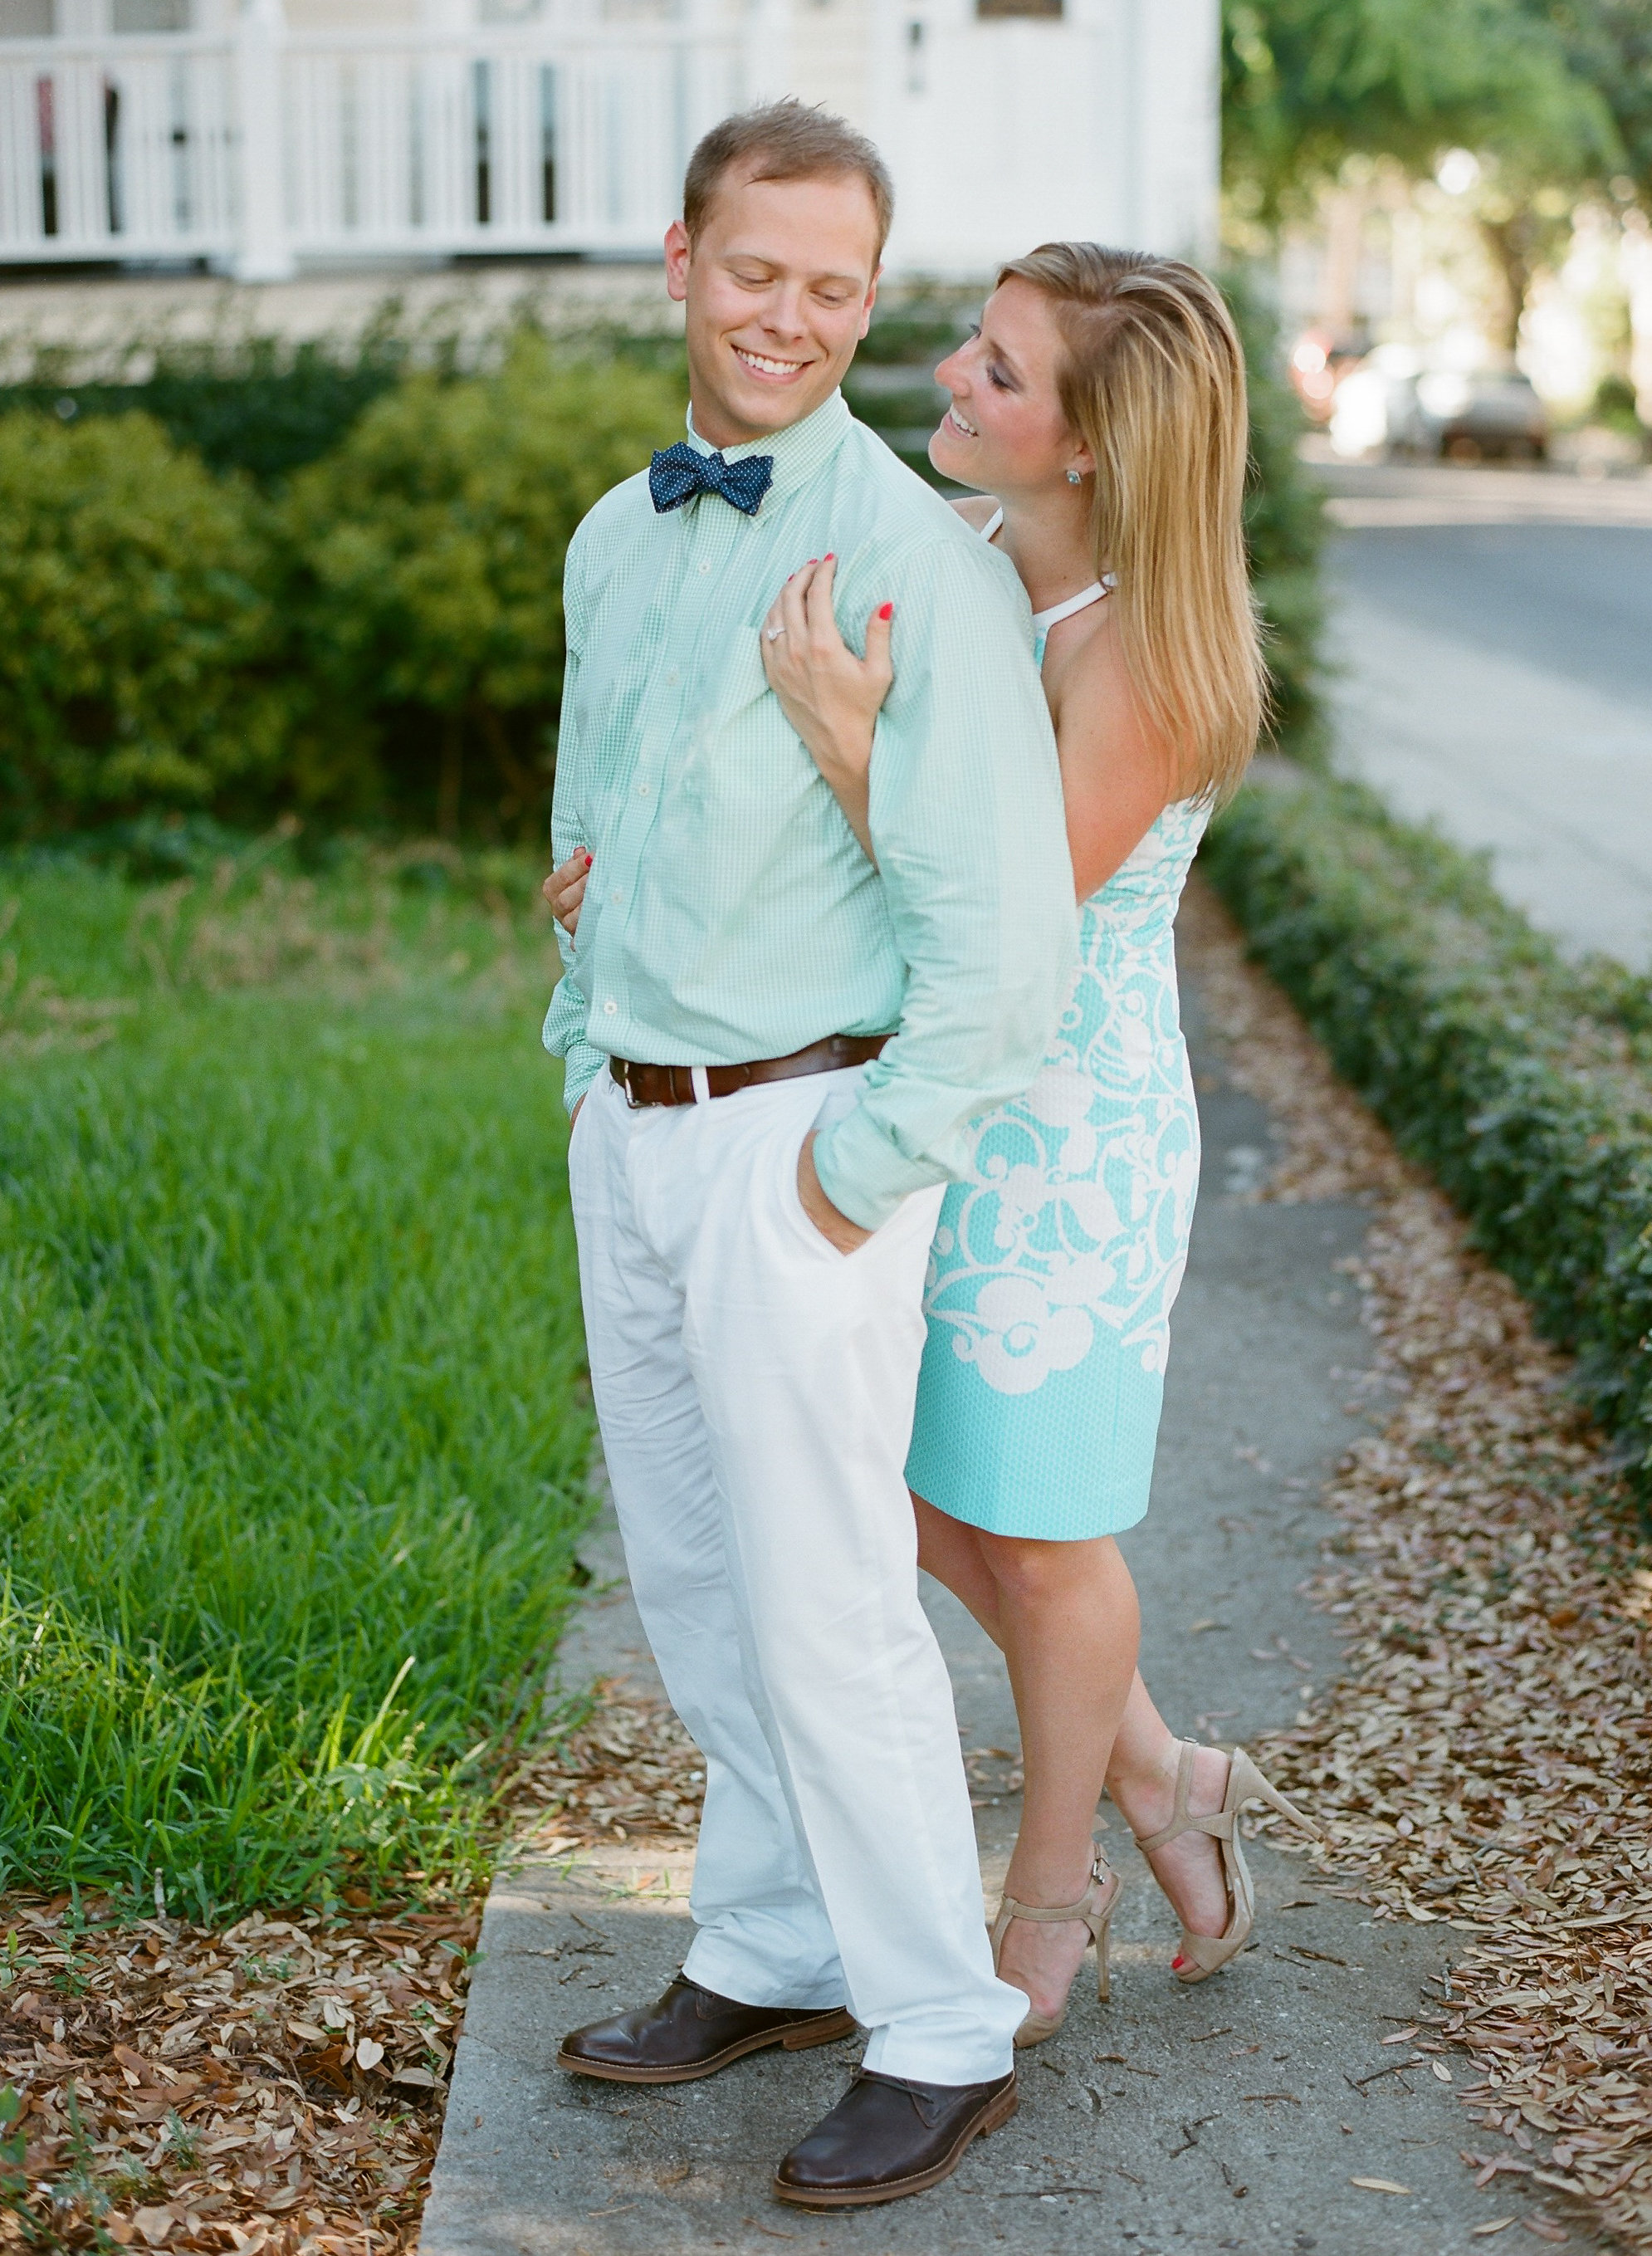 Charleston-Engagement-Photography-Lauren-Jonas-Josh-Lauren-4.jpg